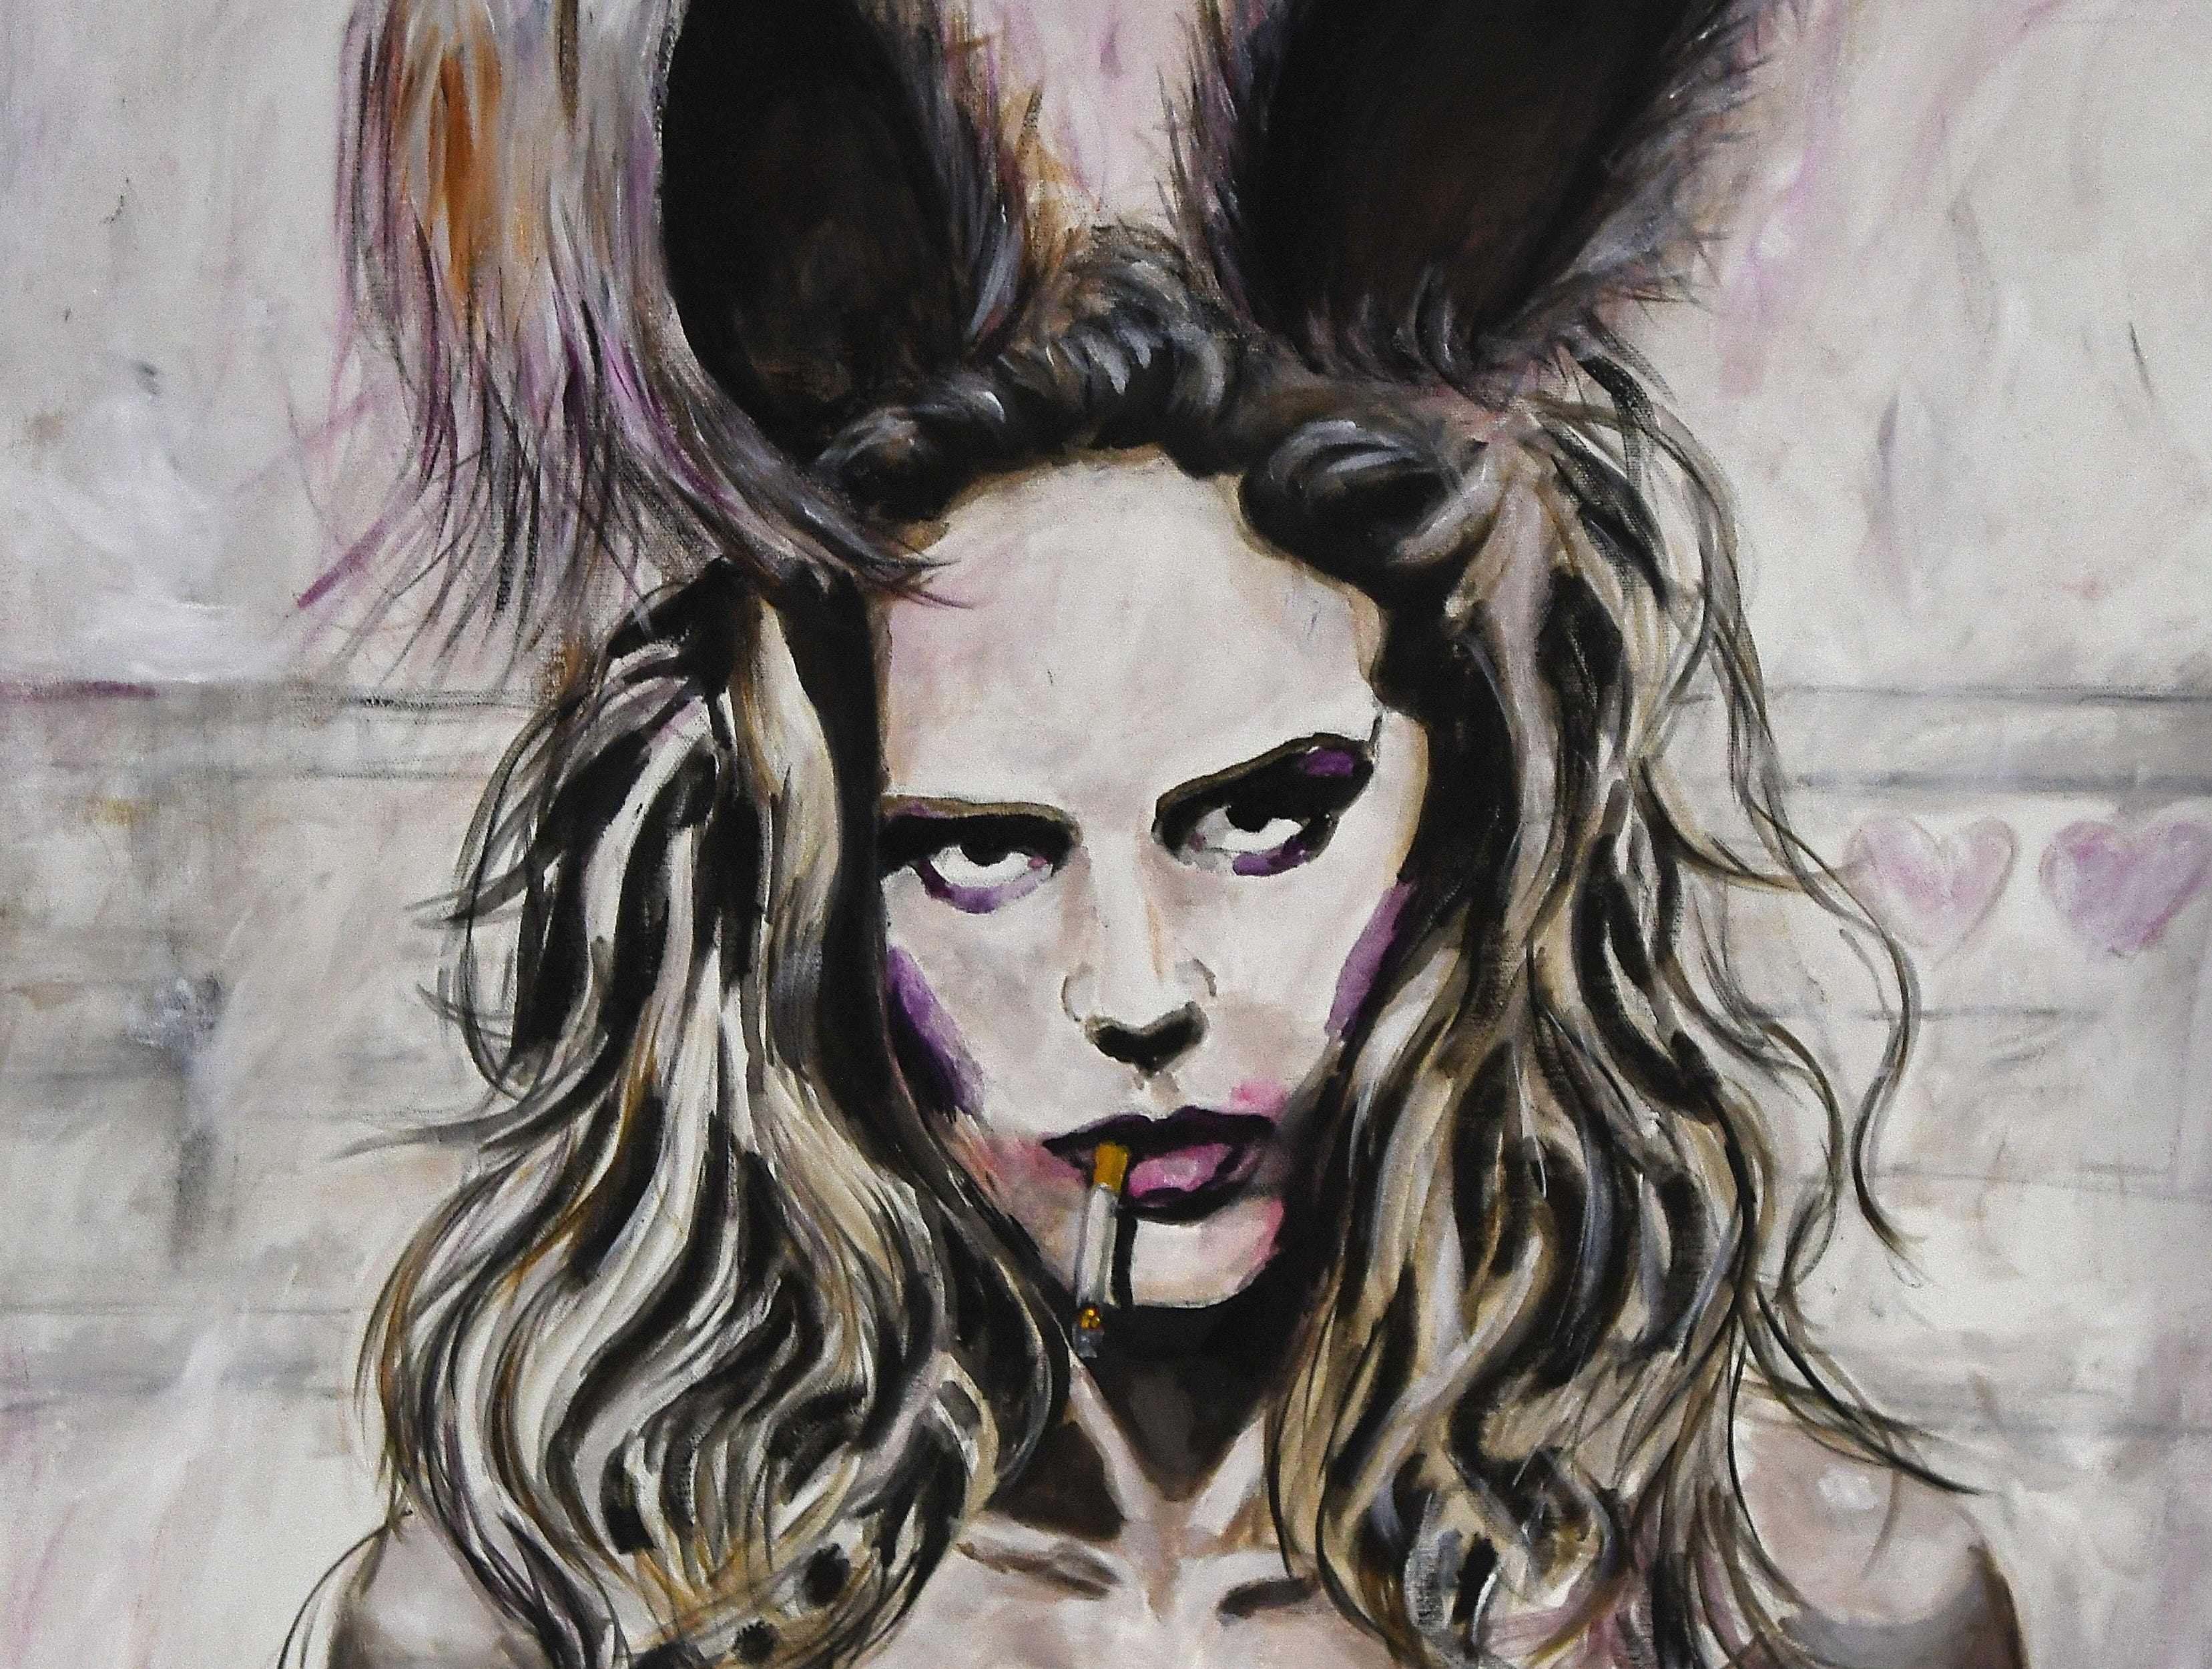 Dirty Show entry 'Bad Bunny' by artist Peter Martin of Austria.